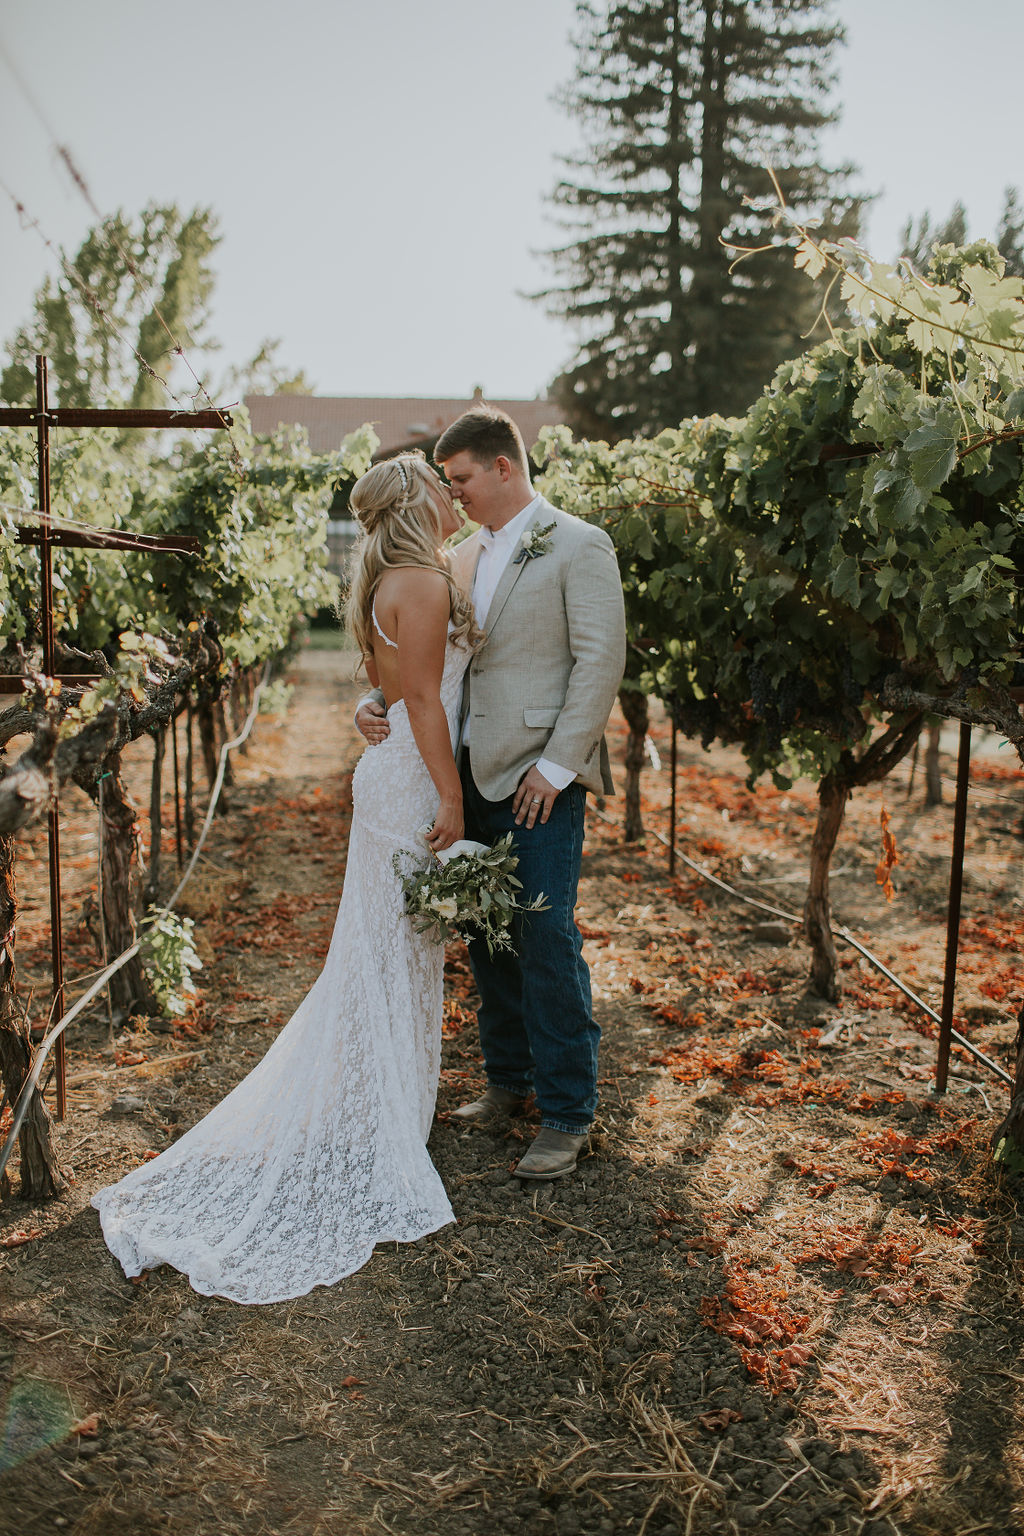 Romantic Vineyard Wedding- Napa, California -